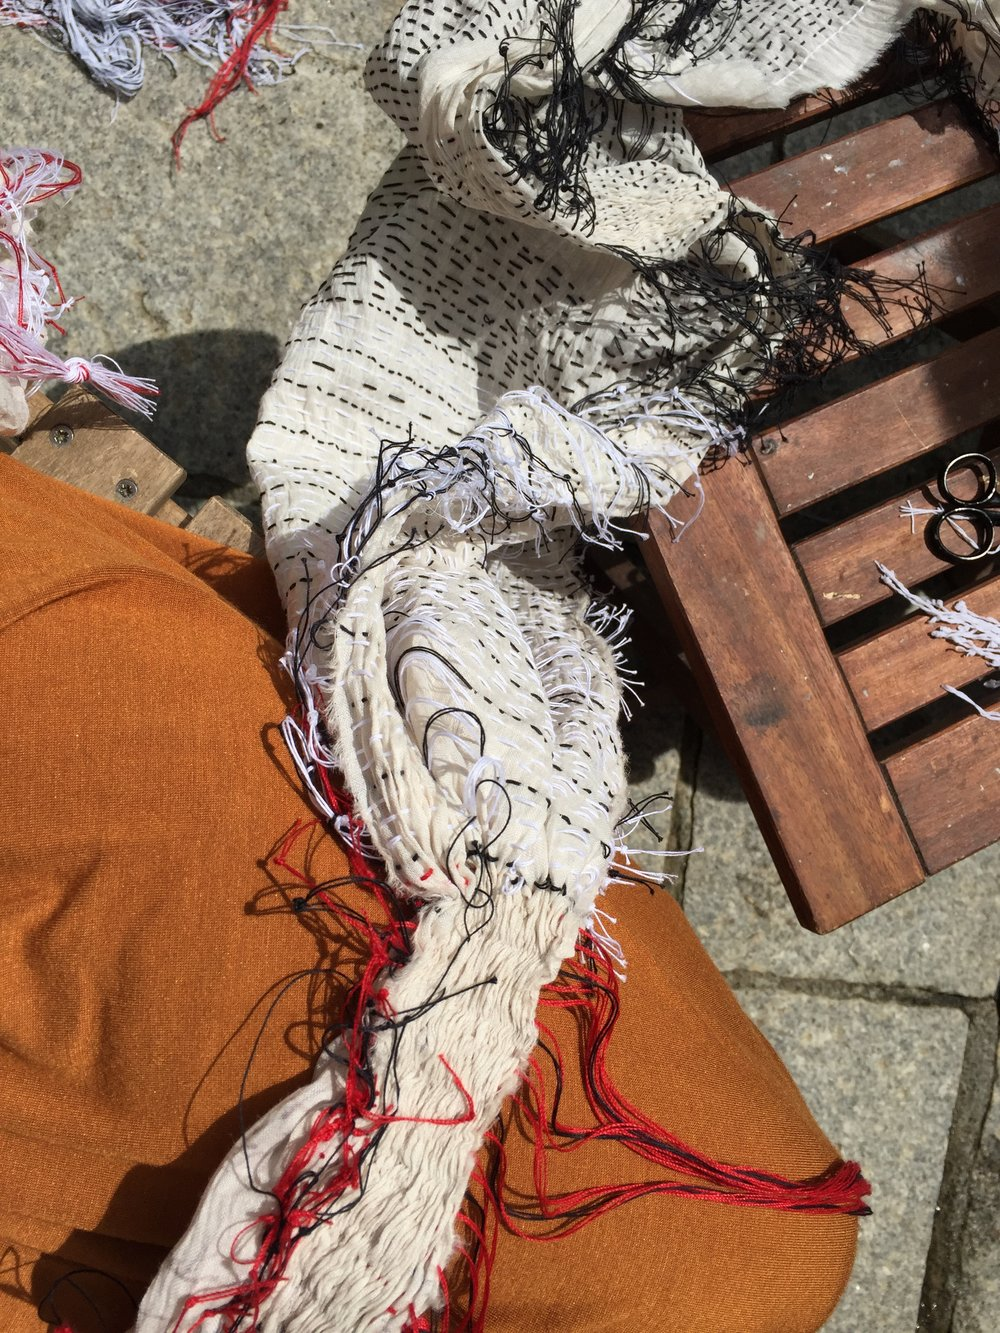 Homeowrk and stitching in preparation for dyeing